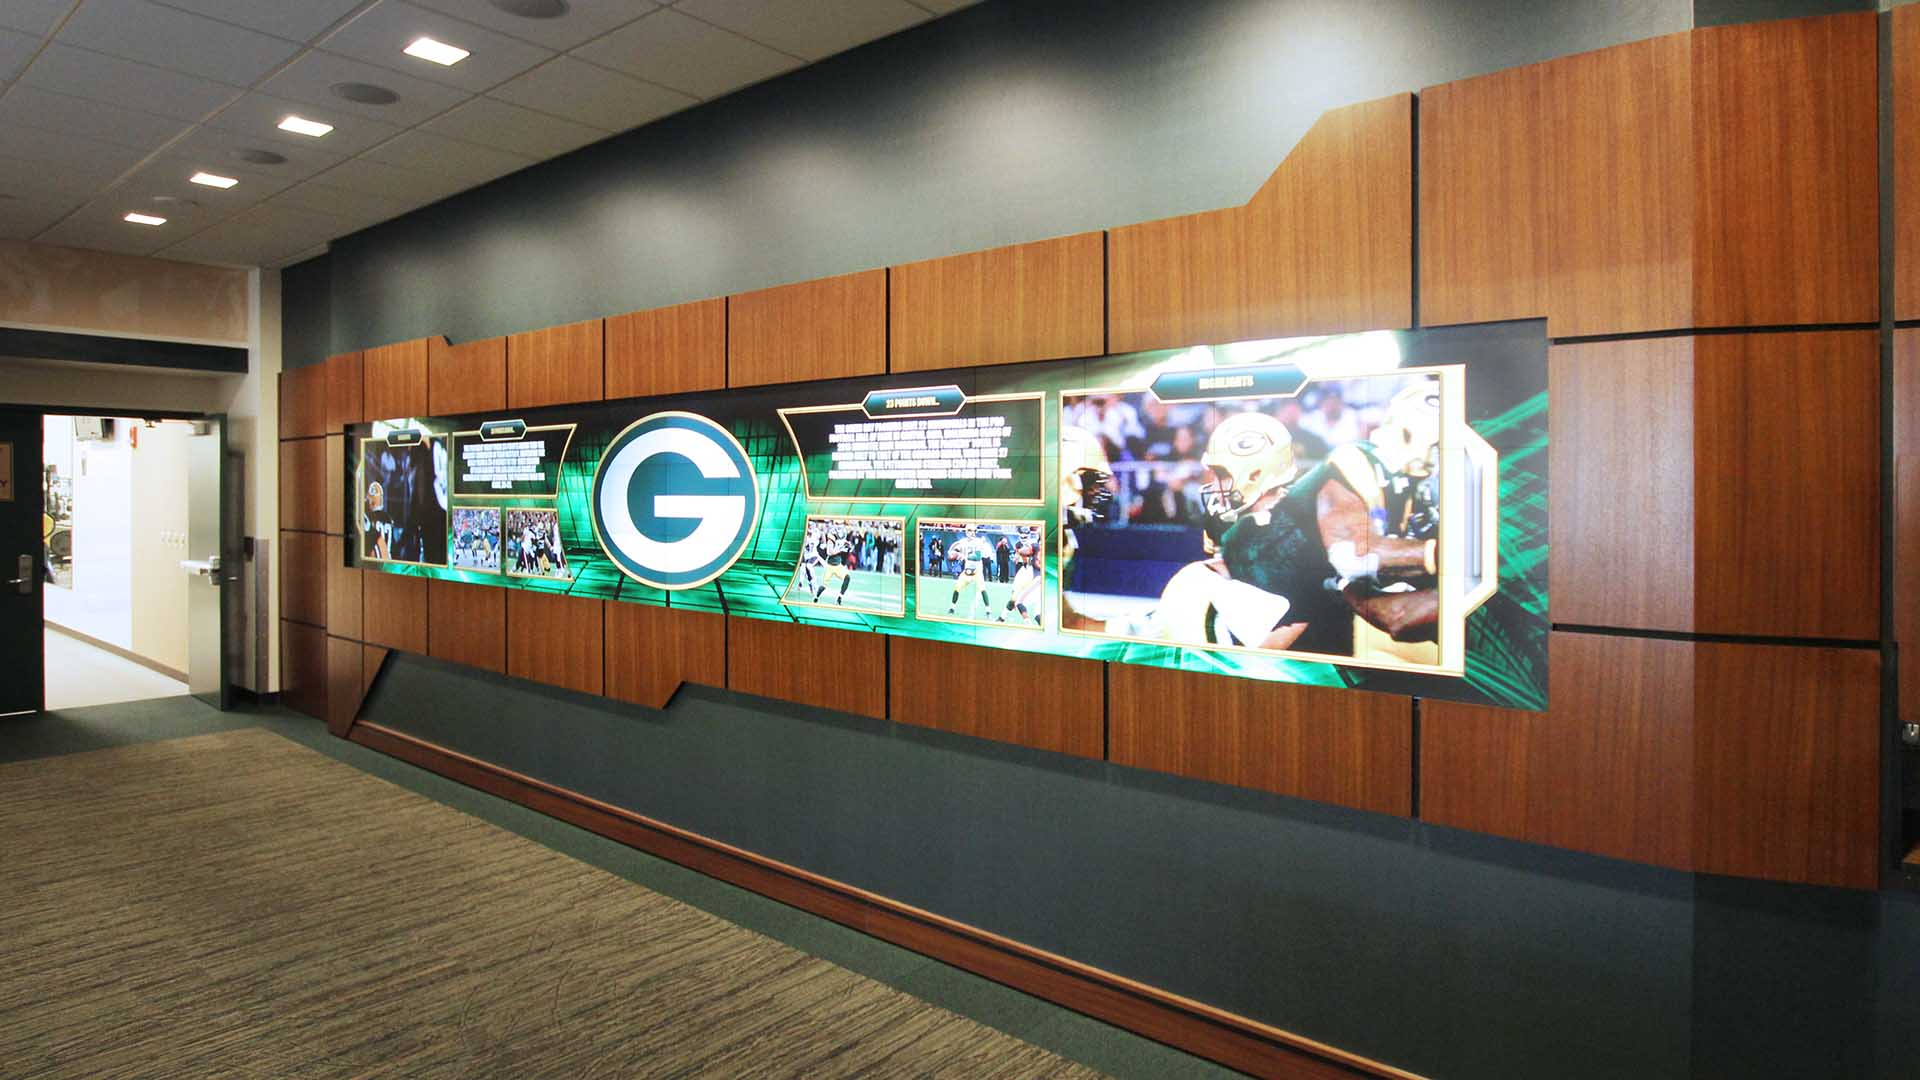 Media exhibit featuring player updates, message boards, game highlights, and player information